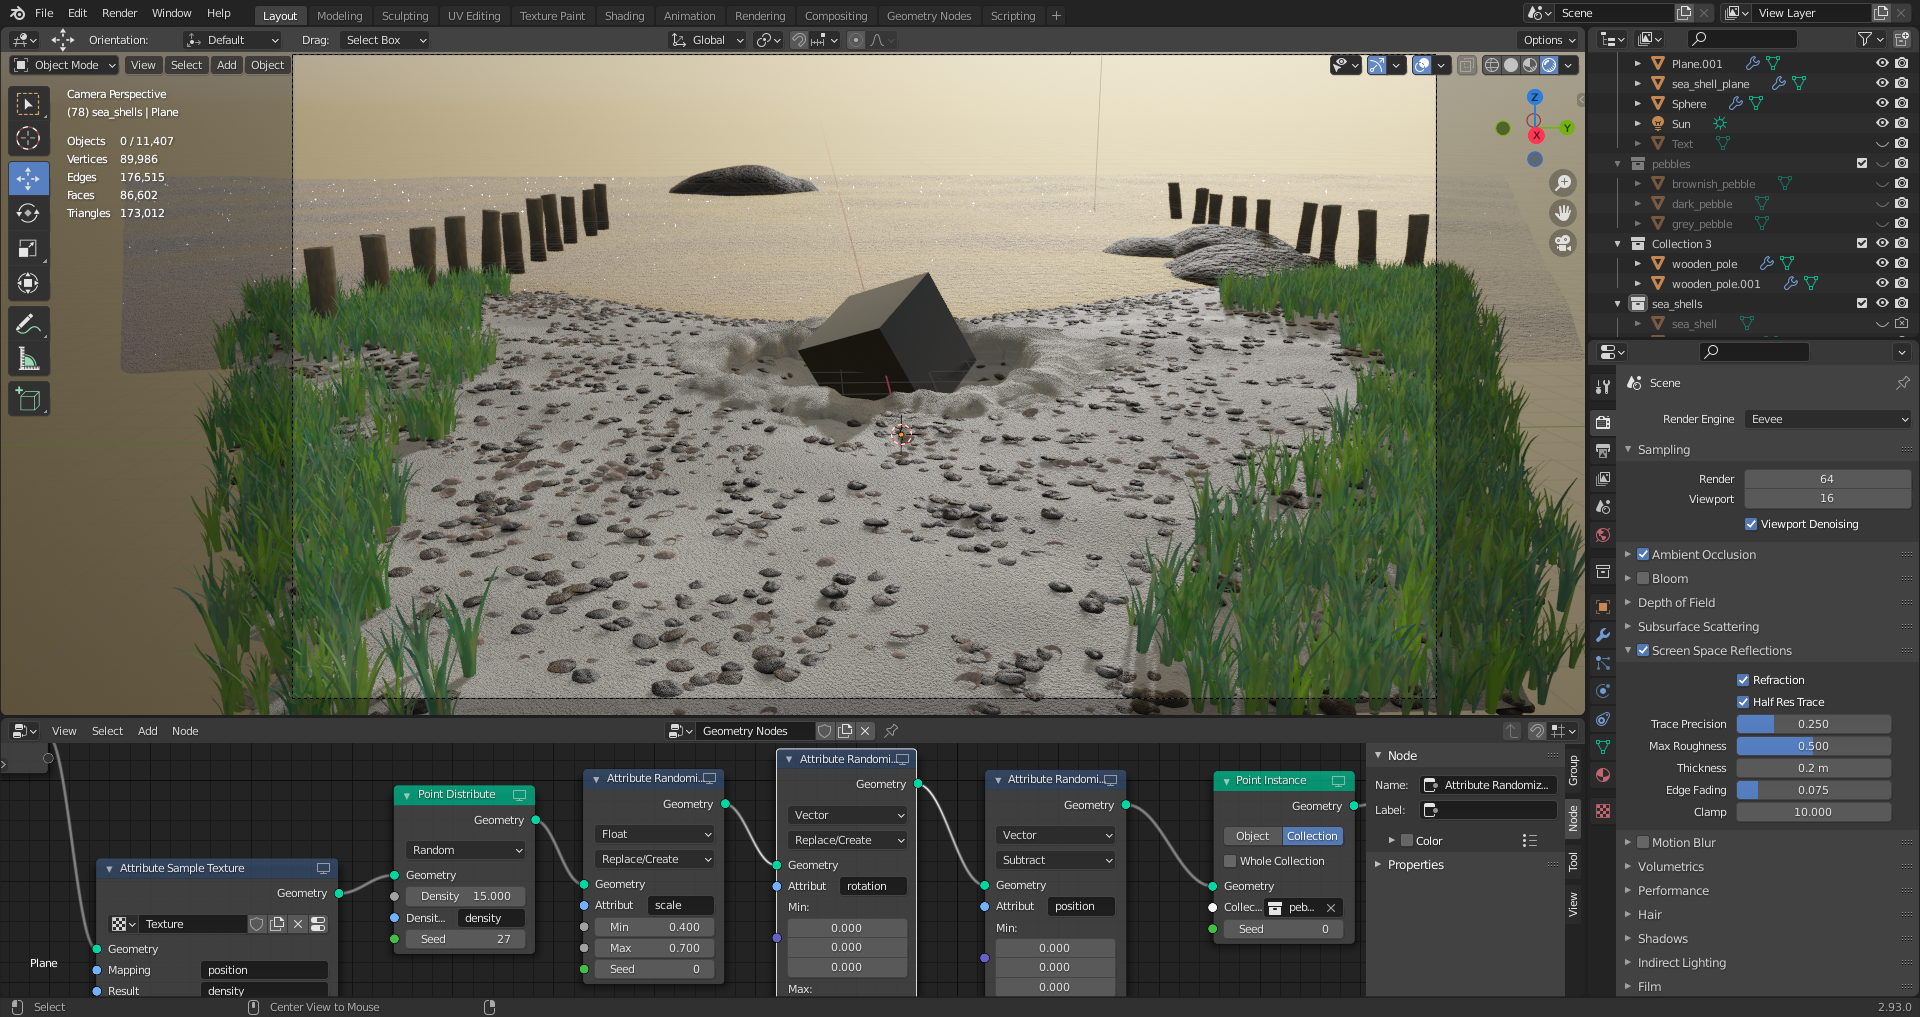 A screenshot of a scene and the user interface in modern Blender versions. It's a scene of a beach with a lot of rocks and dune grass and an ocean with a sunset. The userface is dark gray and you can see a node editor at the bottom.